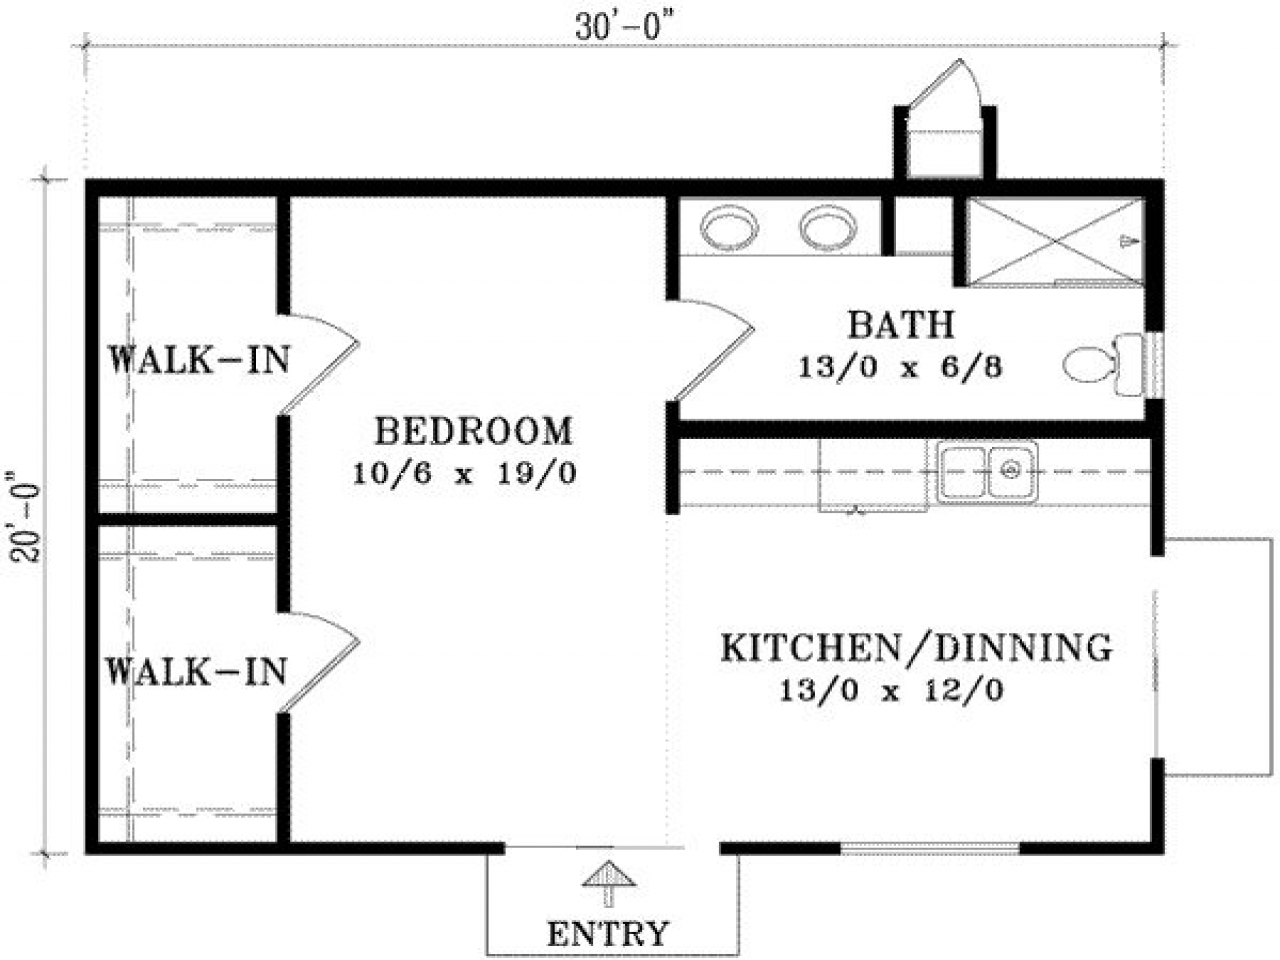 600 square feet house plans 600 sq ft cottages 600 sq ft for 600 sq ft floor plans